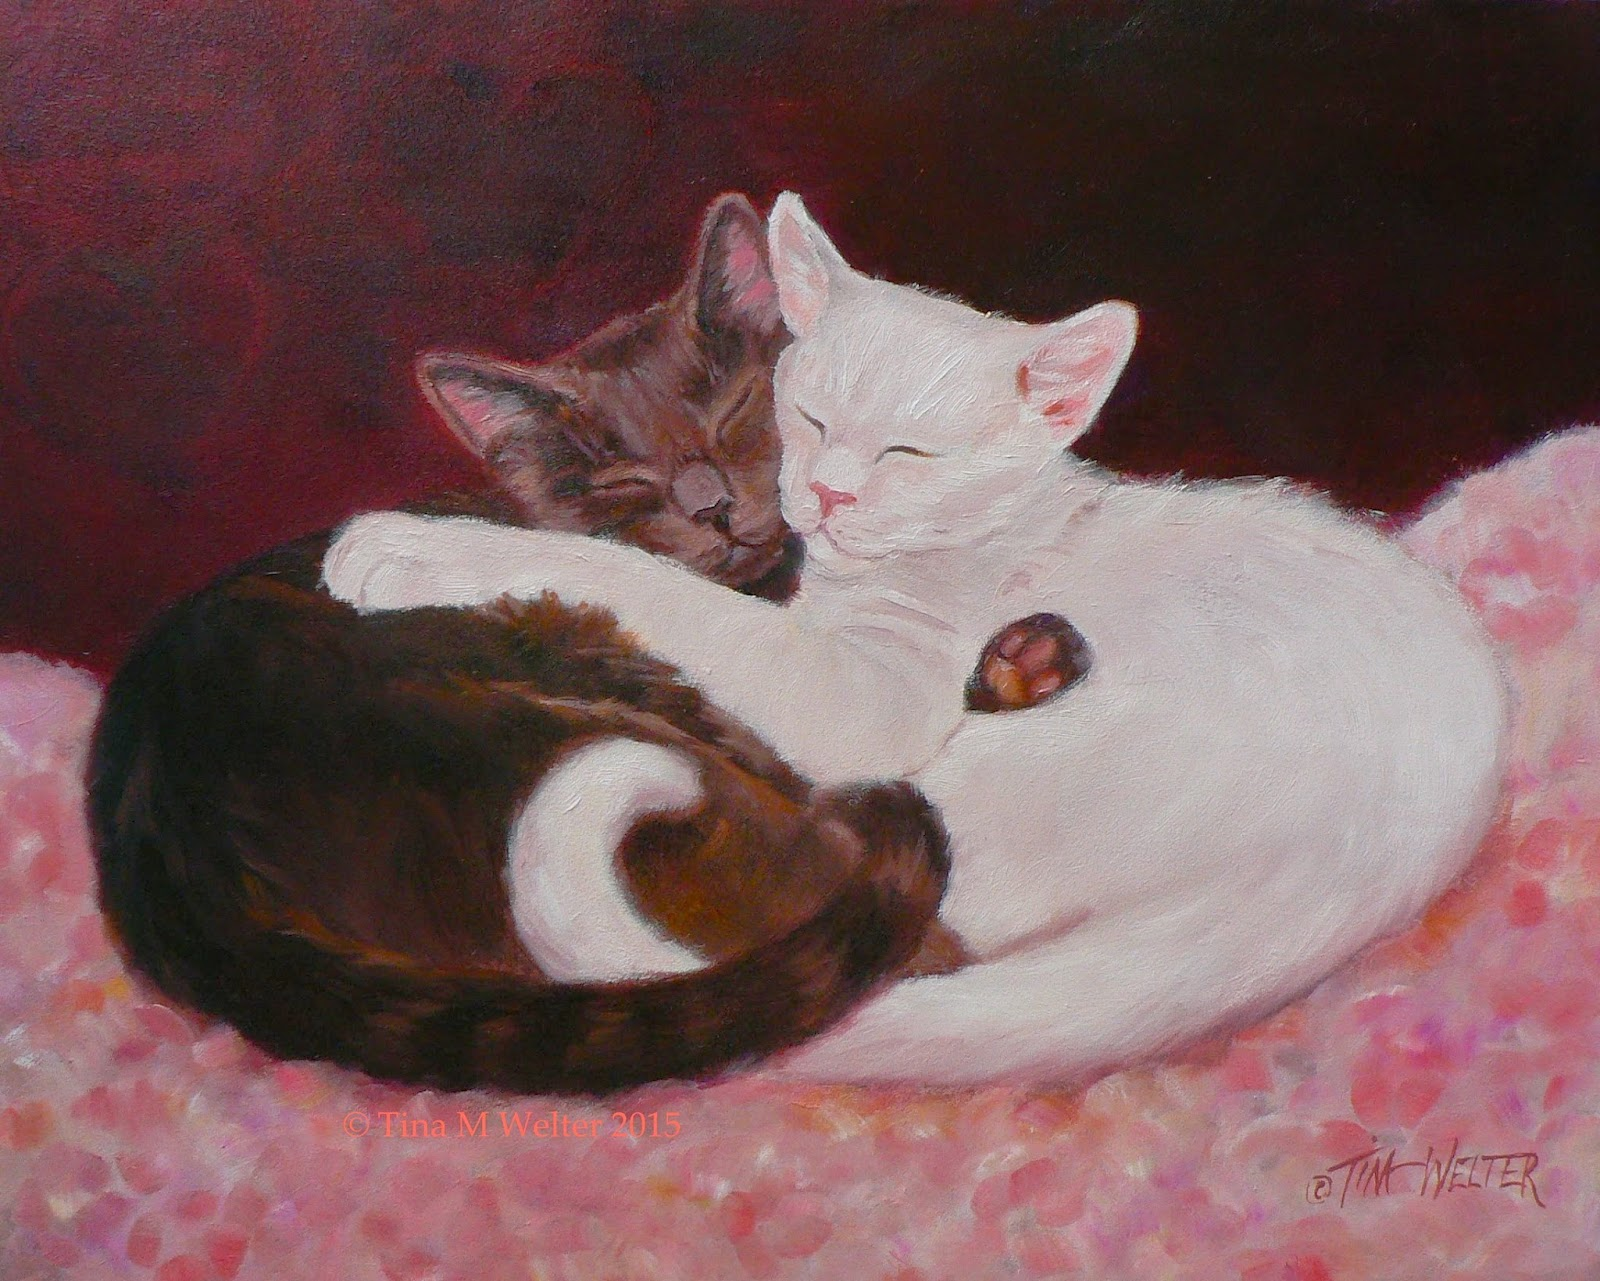 """Best Friends"" 8""x 10"" oil on gessobord, ©2015 Tina M Welter  Grey and White cats together on flowered pillow and red violet background with hearts."